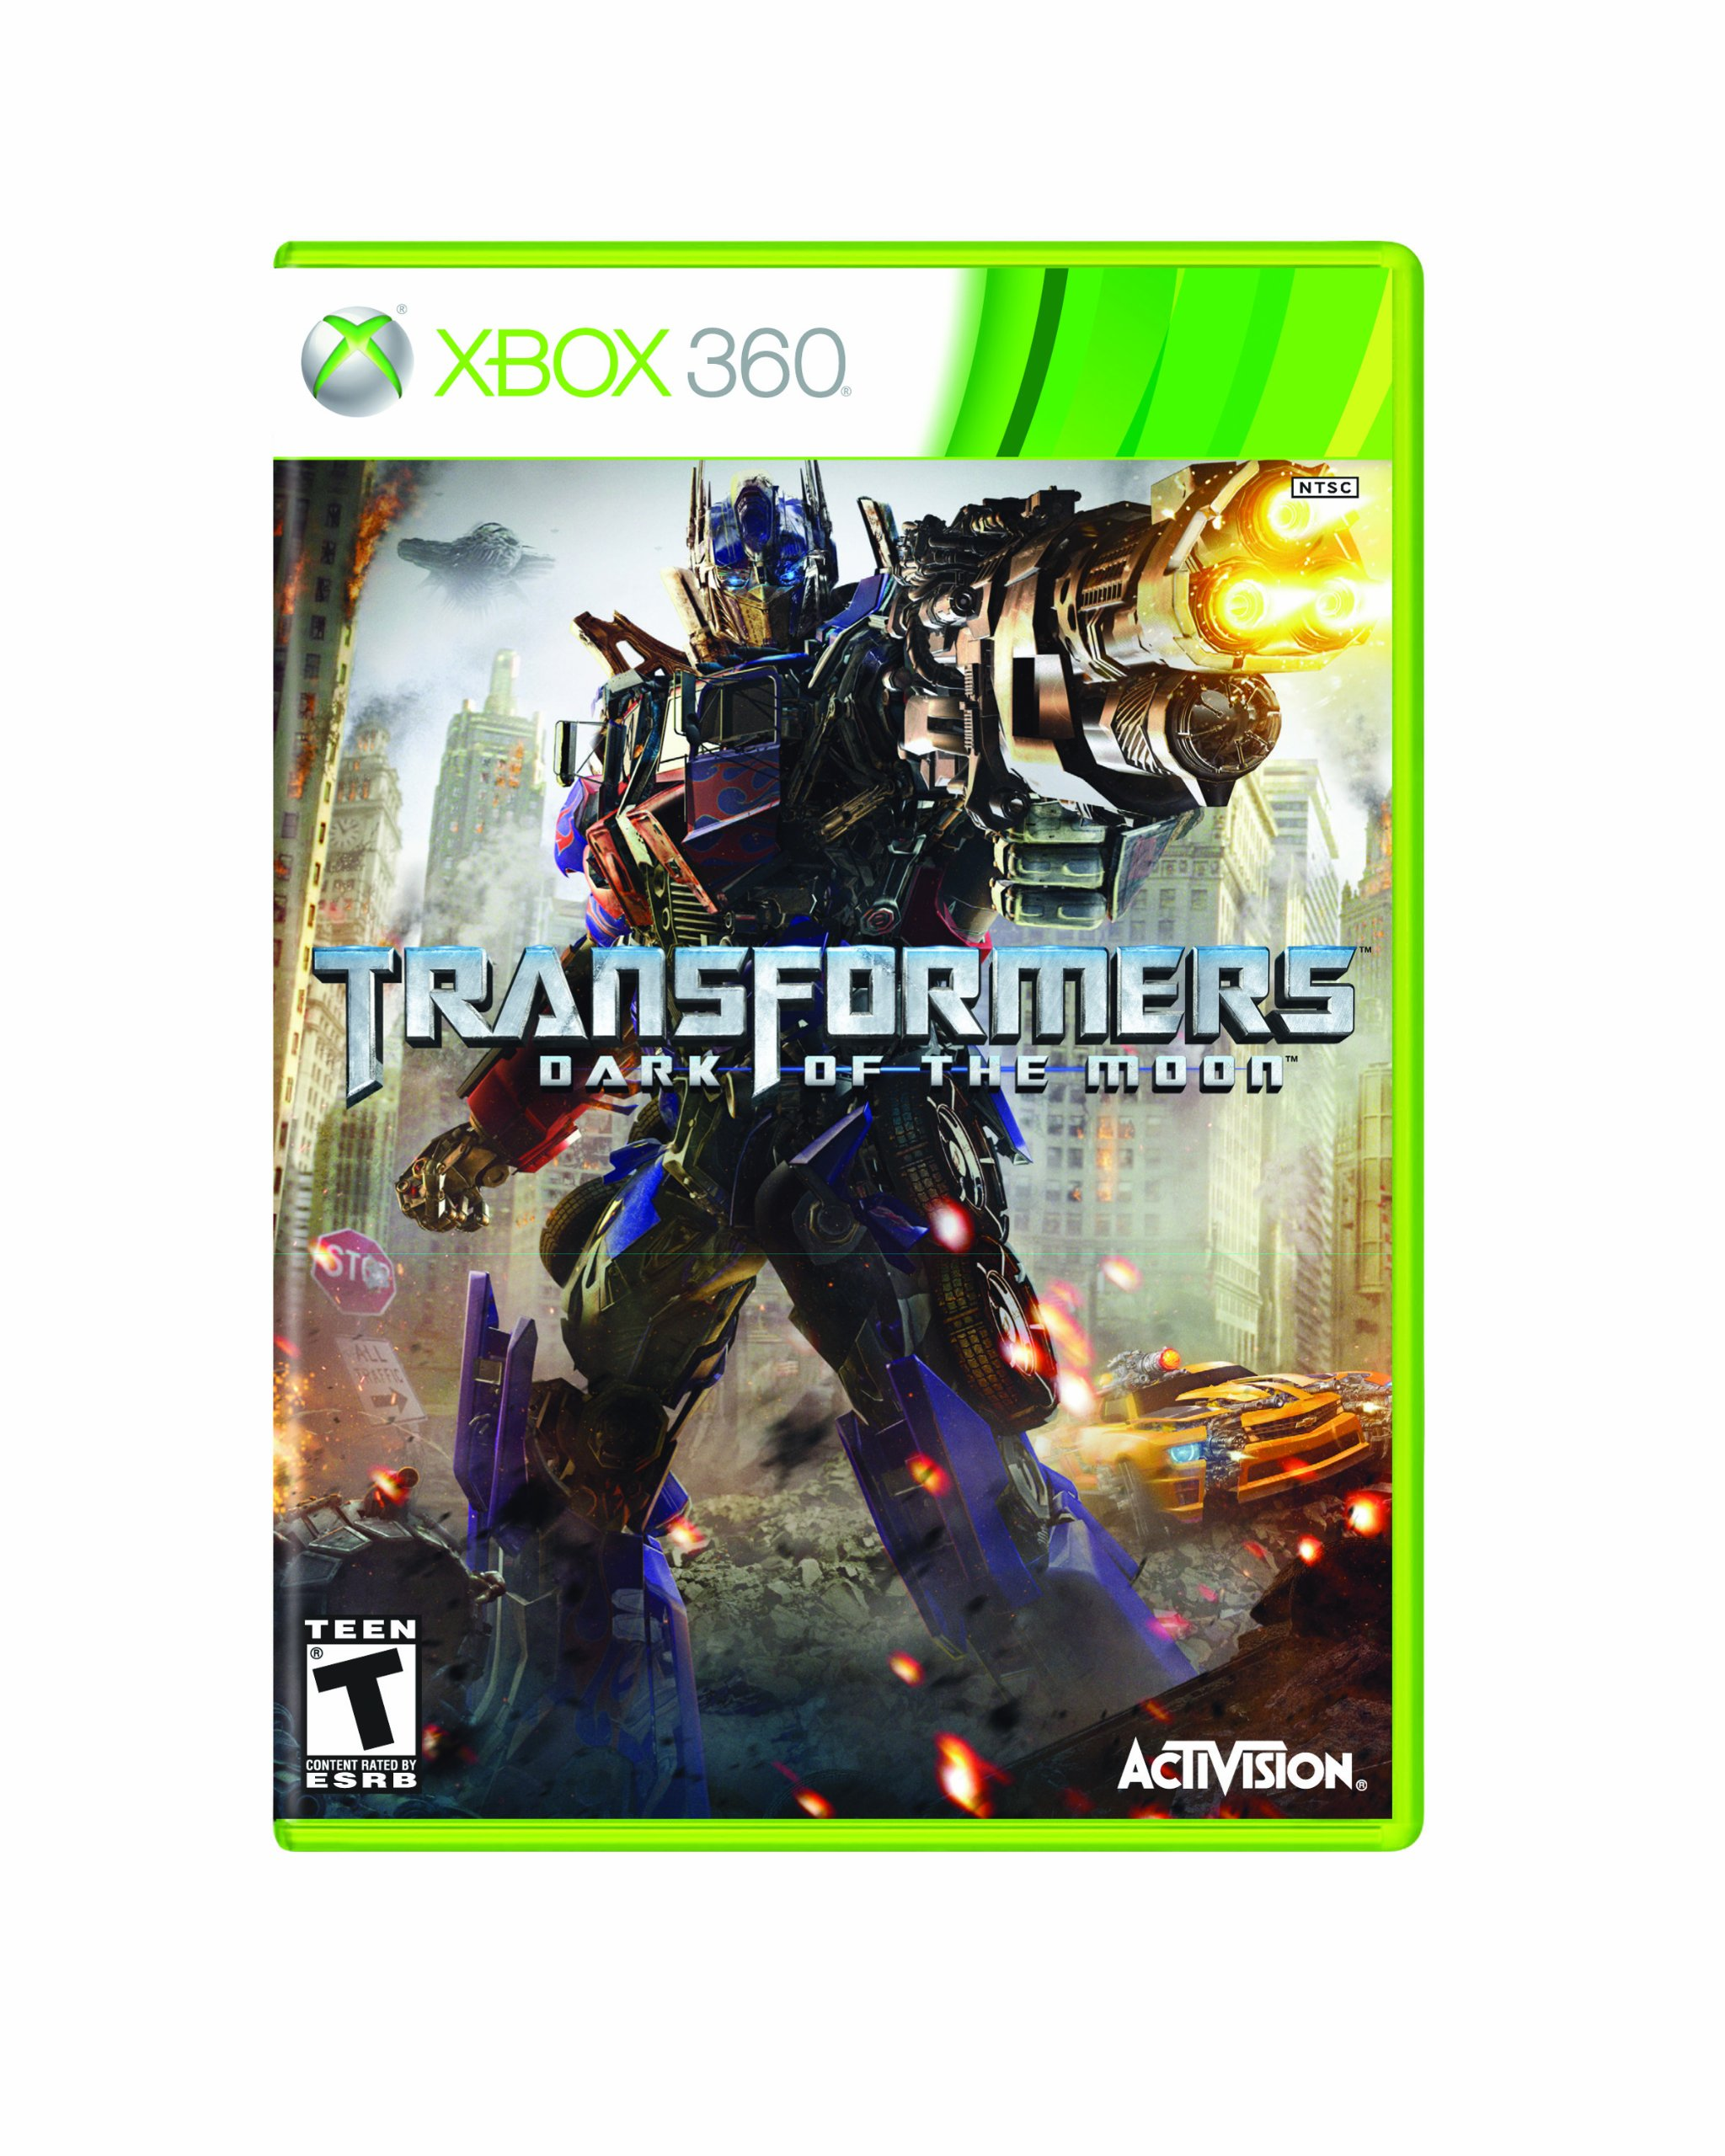 [Jeu vidéo] Films Transformers - The Game | Revenge of the fallen | Dark of the Moon | Rise of the Dark Spark | etc - Page 5 9115PPXf7kL